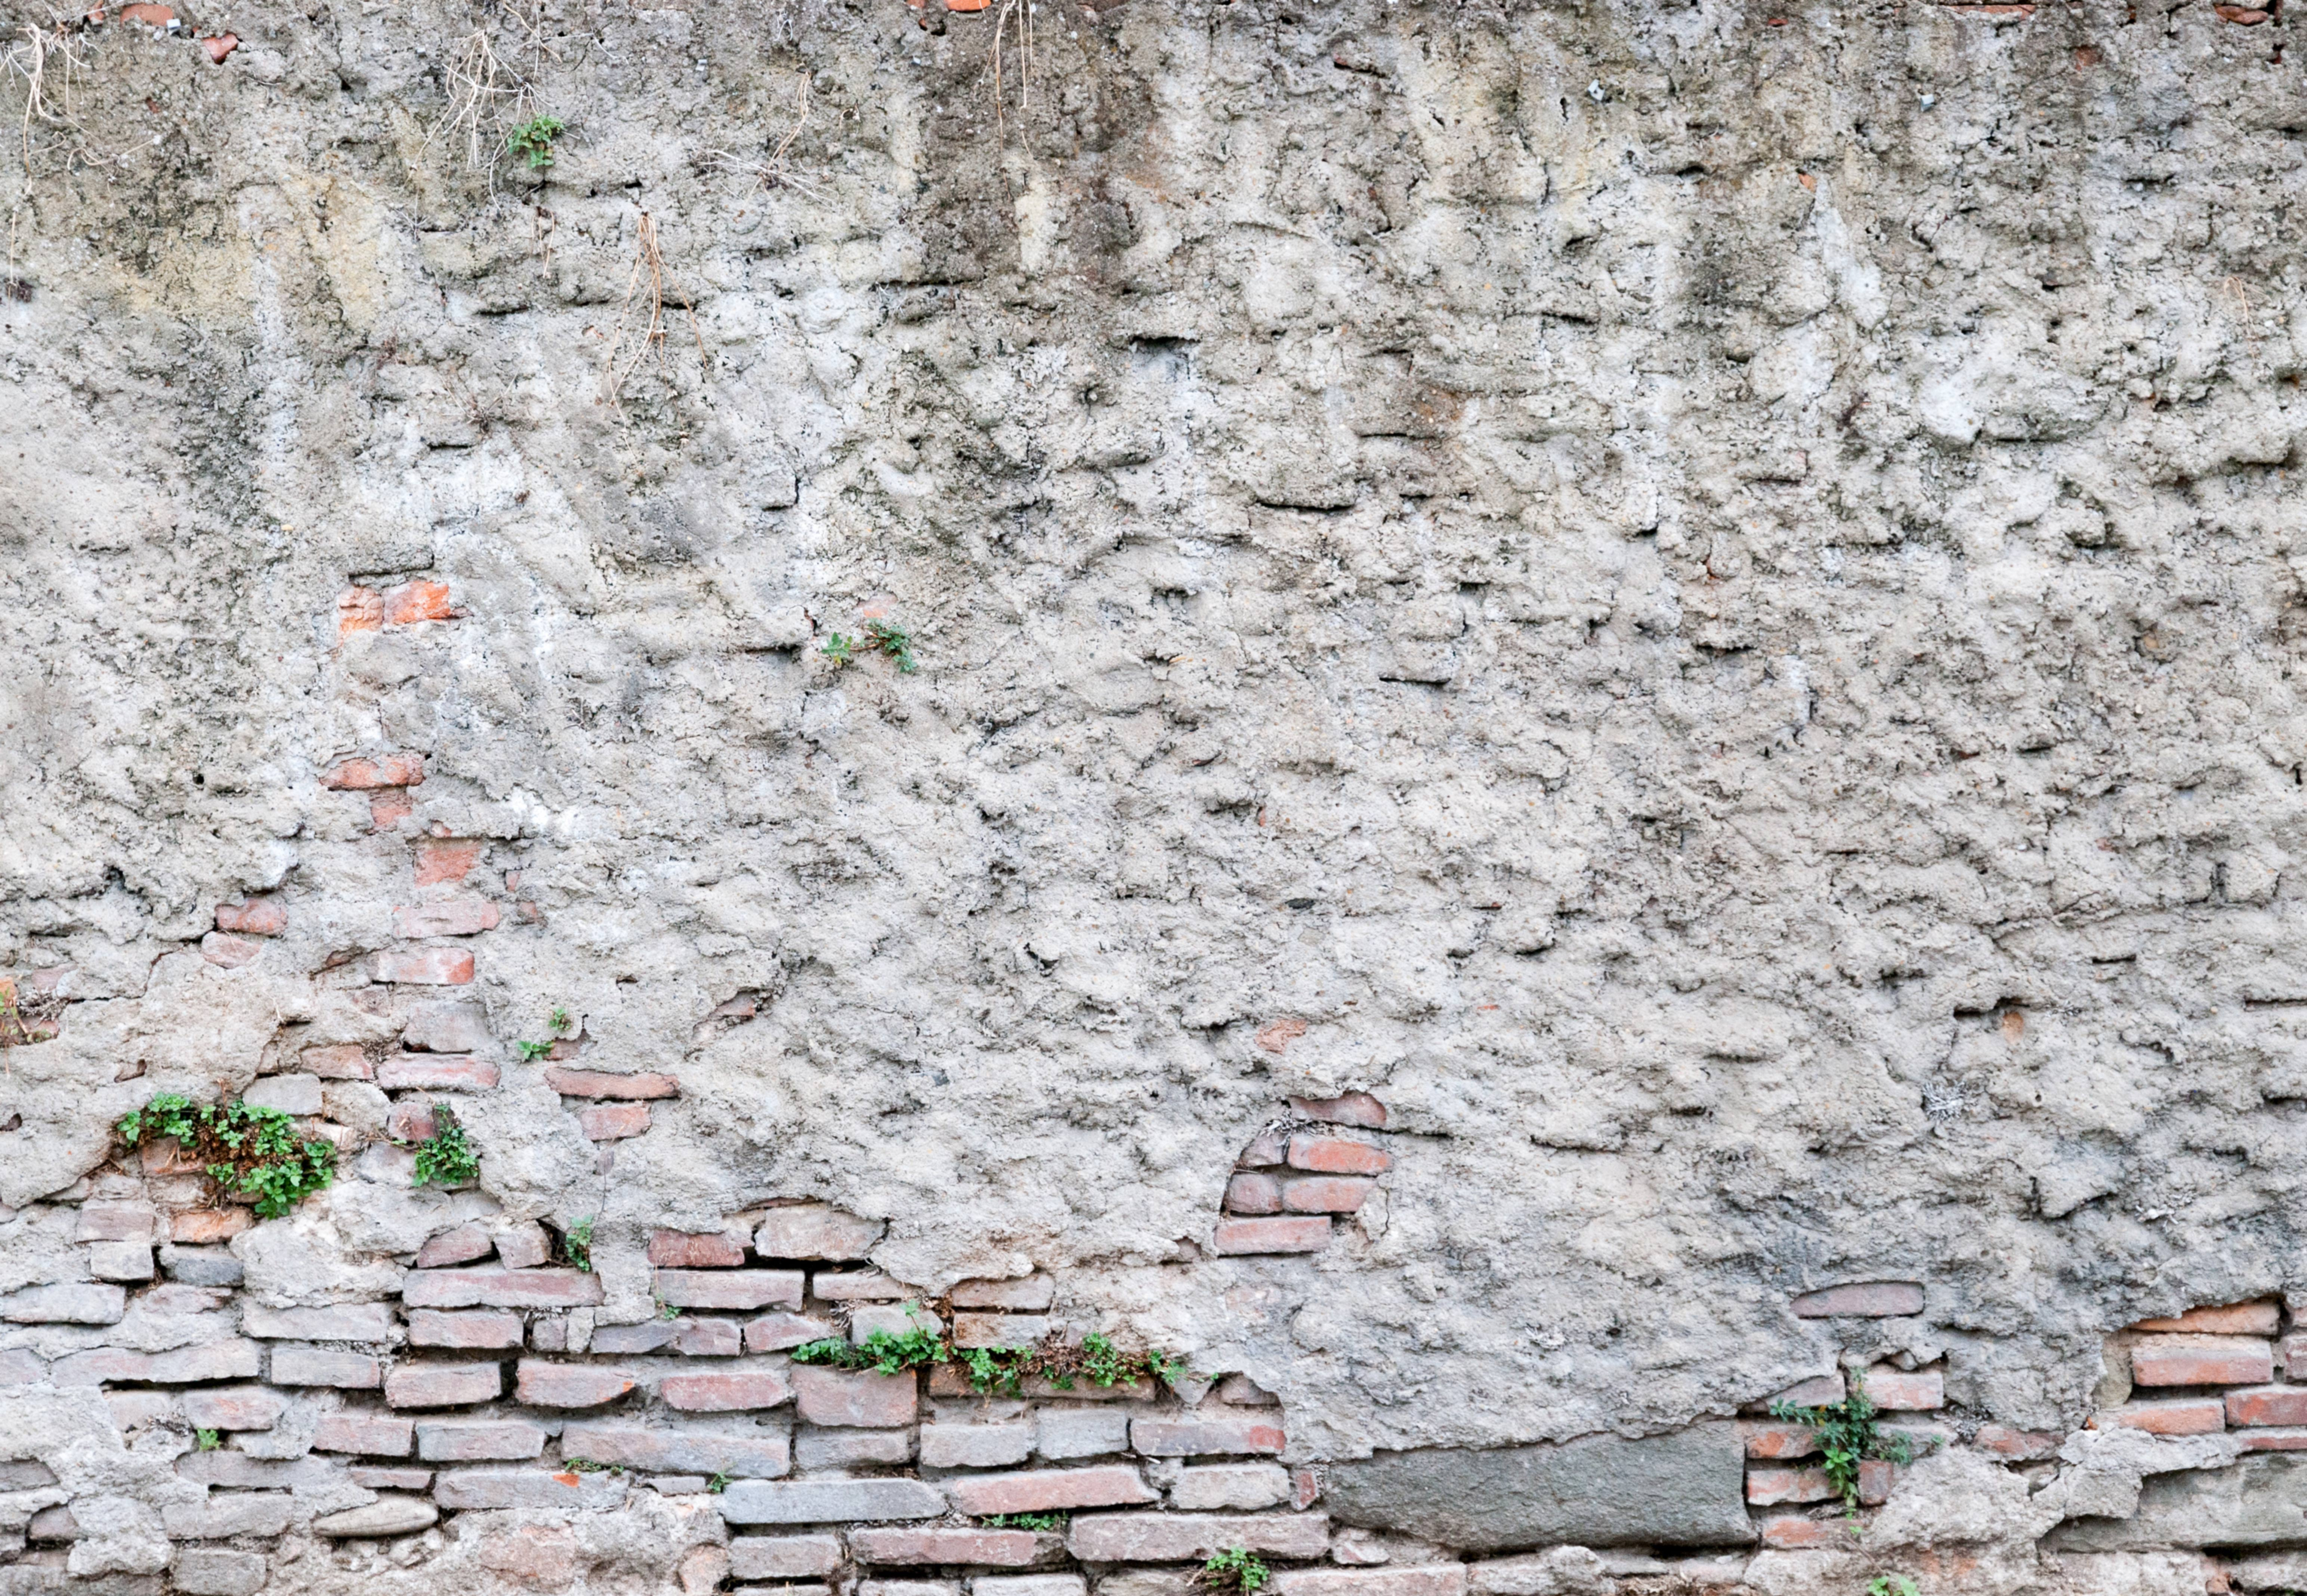 Cracked concrete old brick wall background